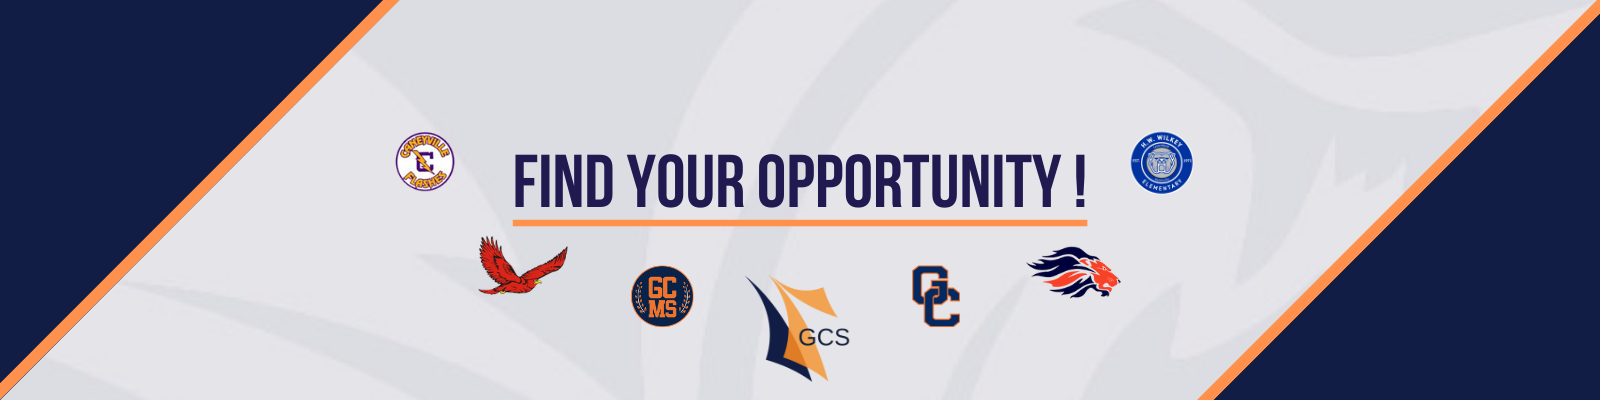 Find Your Opportunity Graphic